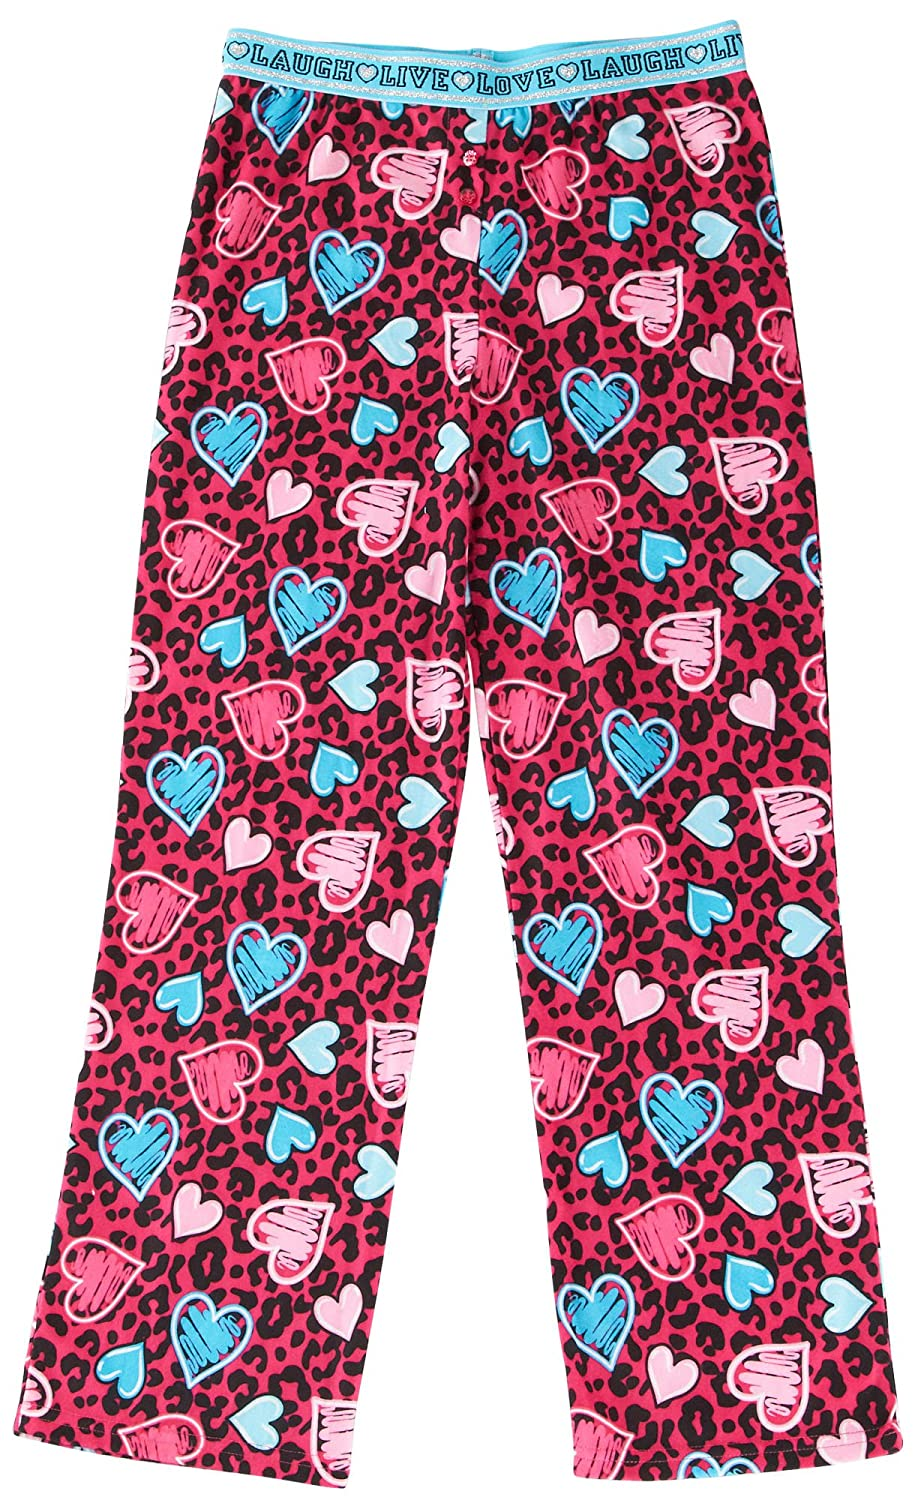 Jelli Fish Kids Pink Leopard /& Hearts Pajama Pants